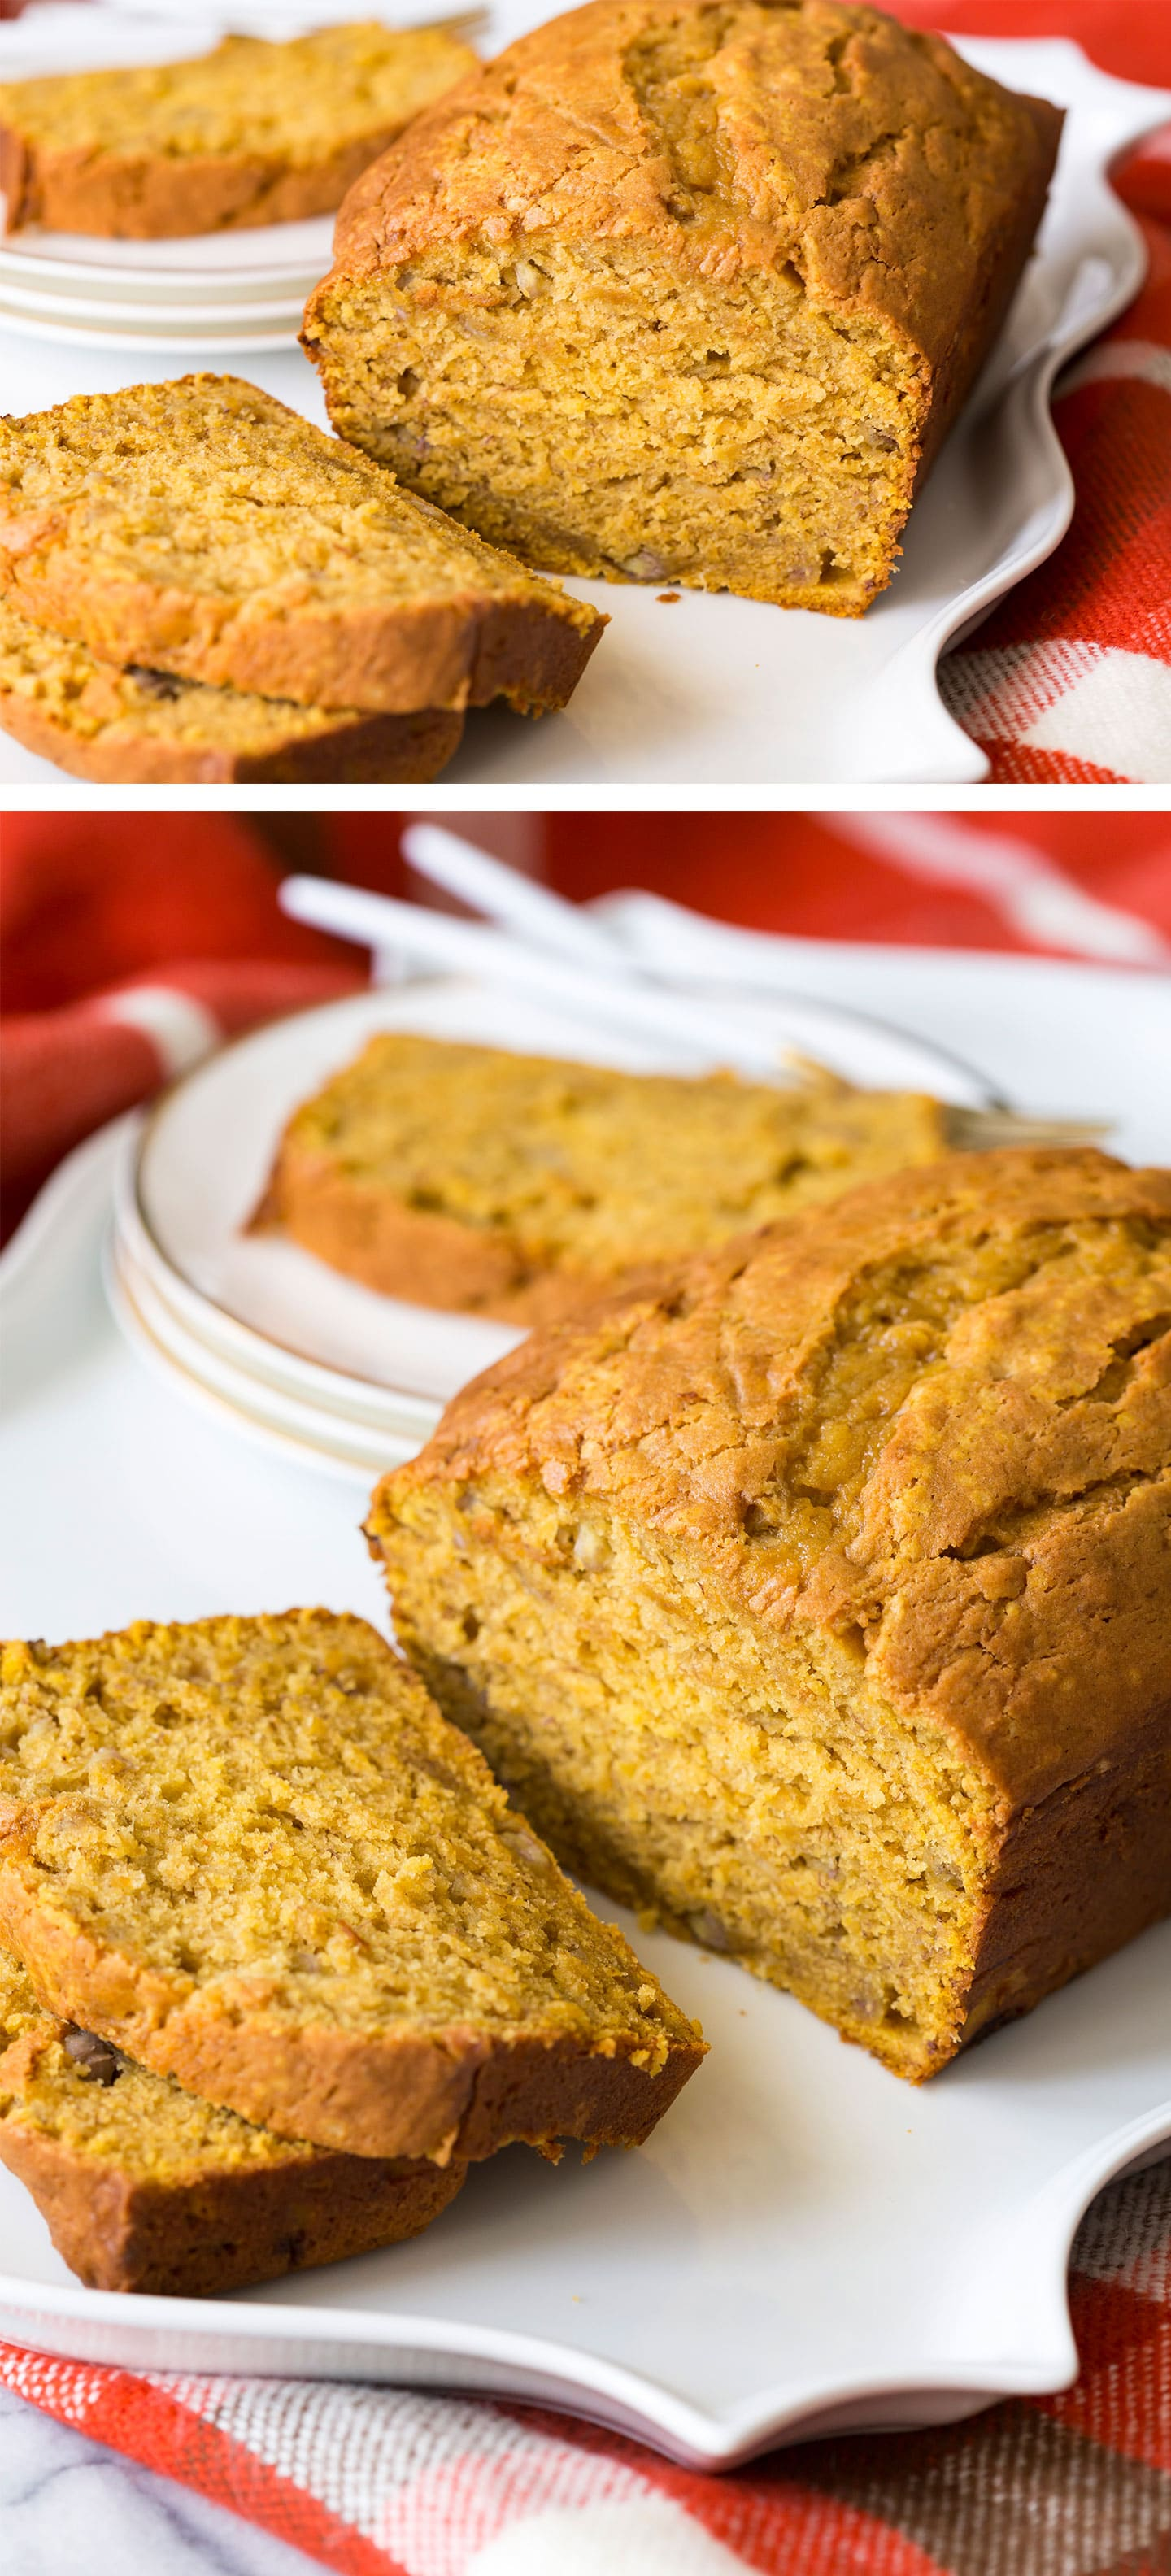 The best Pumpkin Banana Bread combines the fall favorite flavor of pumpkin with my grandmother's 100 year old famous banana bread recipe!